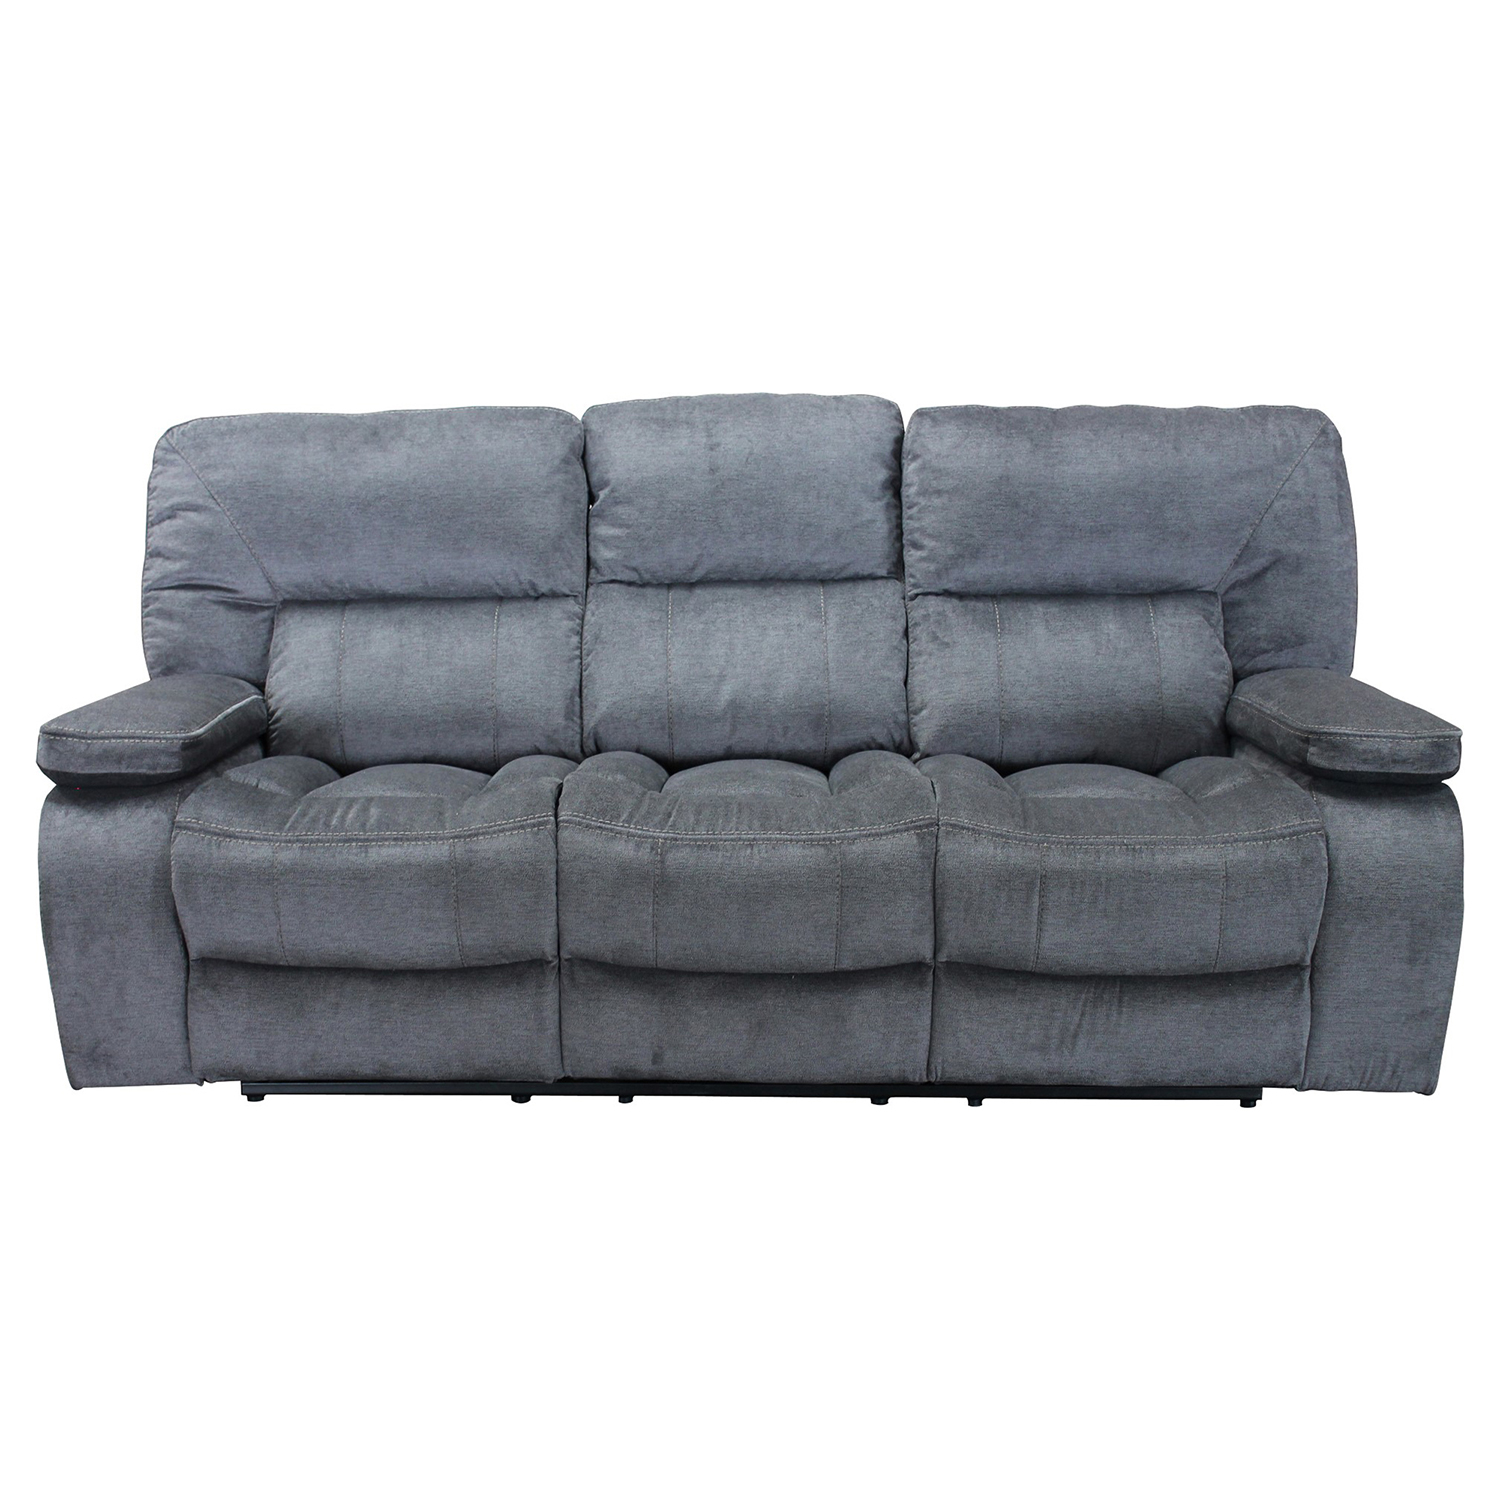 Marvelous Chapman Manual Triple Reclining Sofa In Polo Blue Fabric By Parker House Gmtry Best Dining Table And Chair Ideas Images Gmtryco